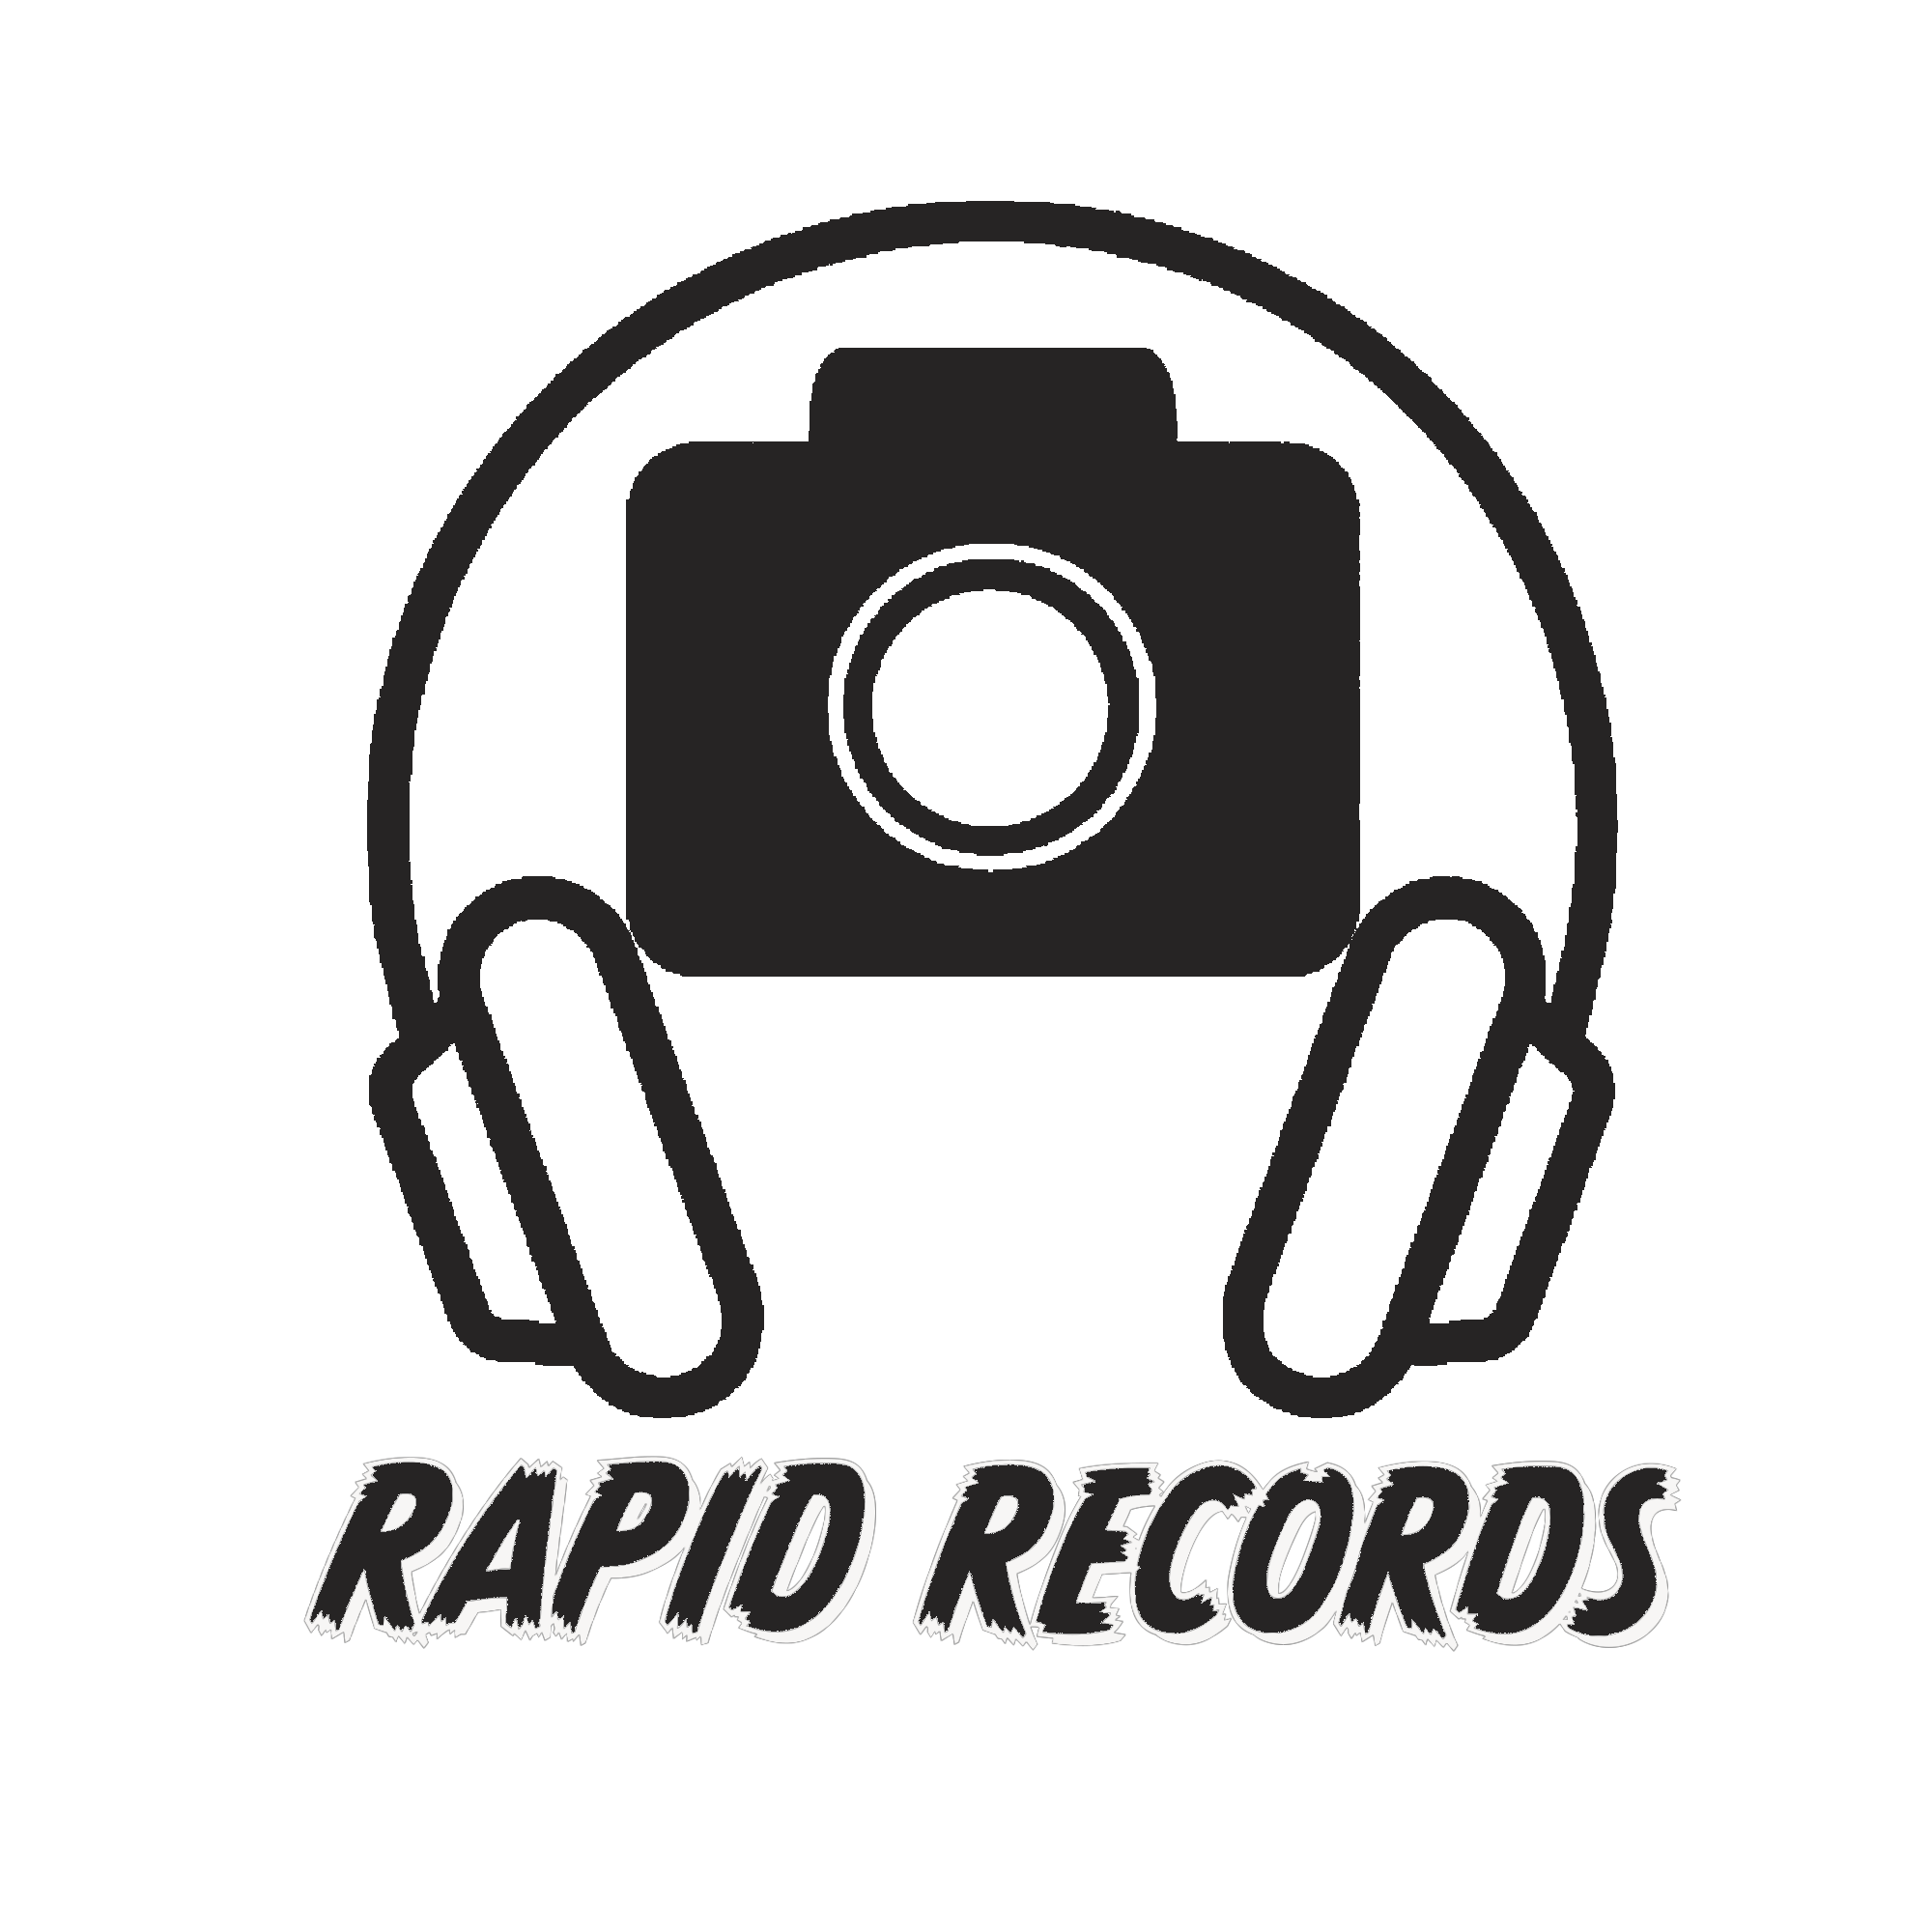 Rapid Records